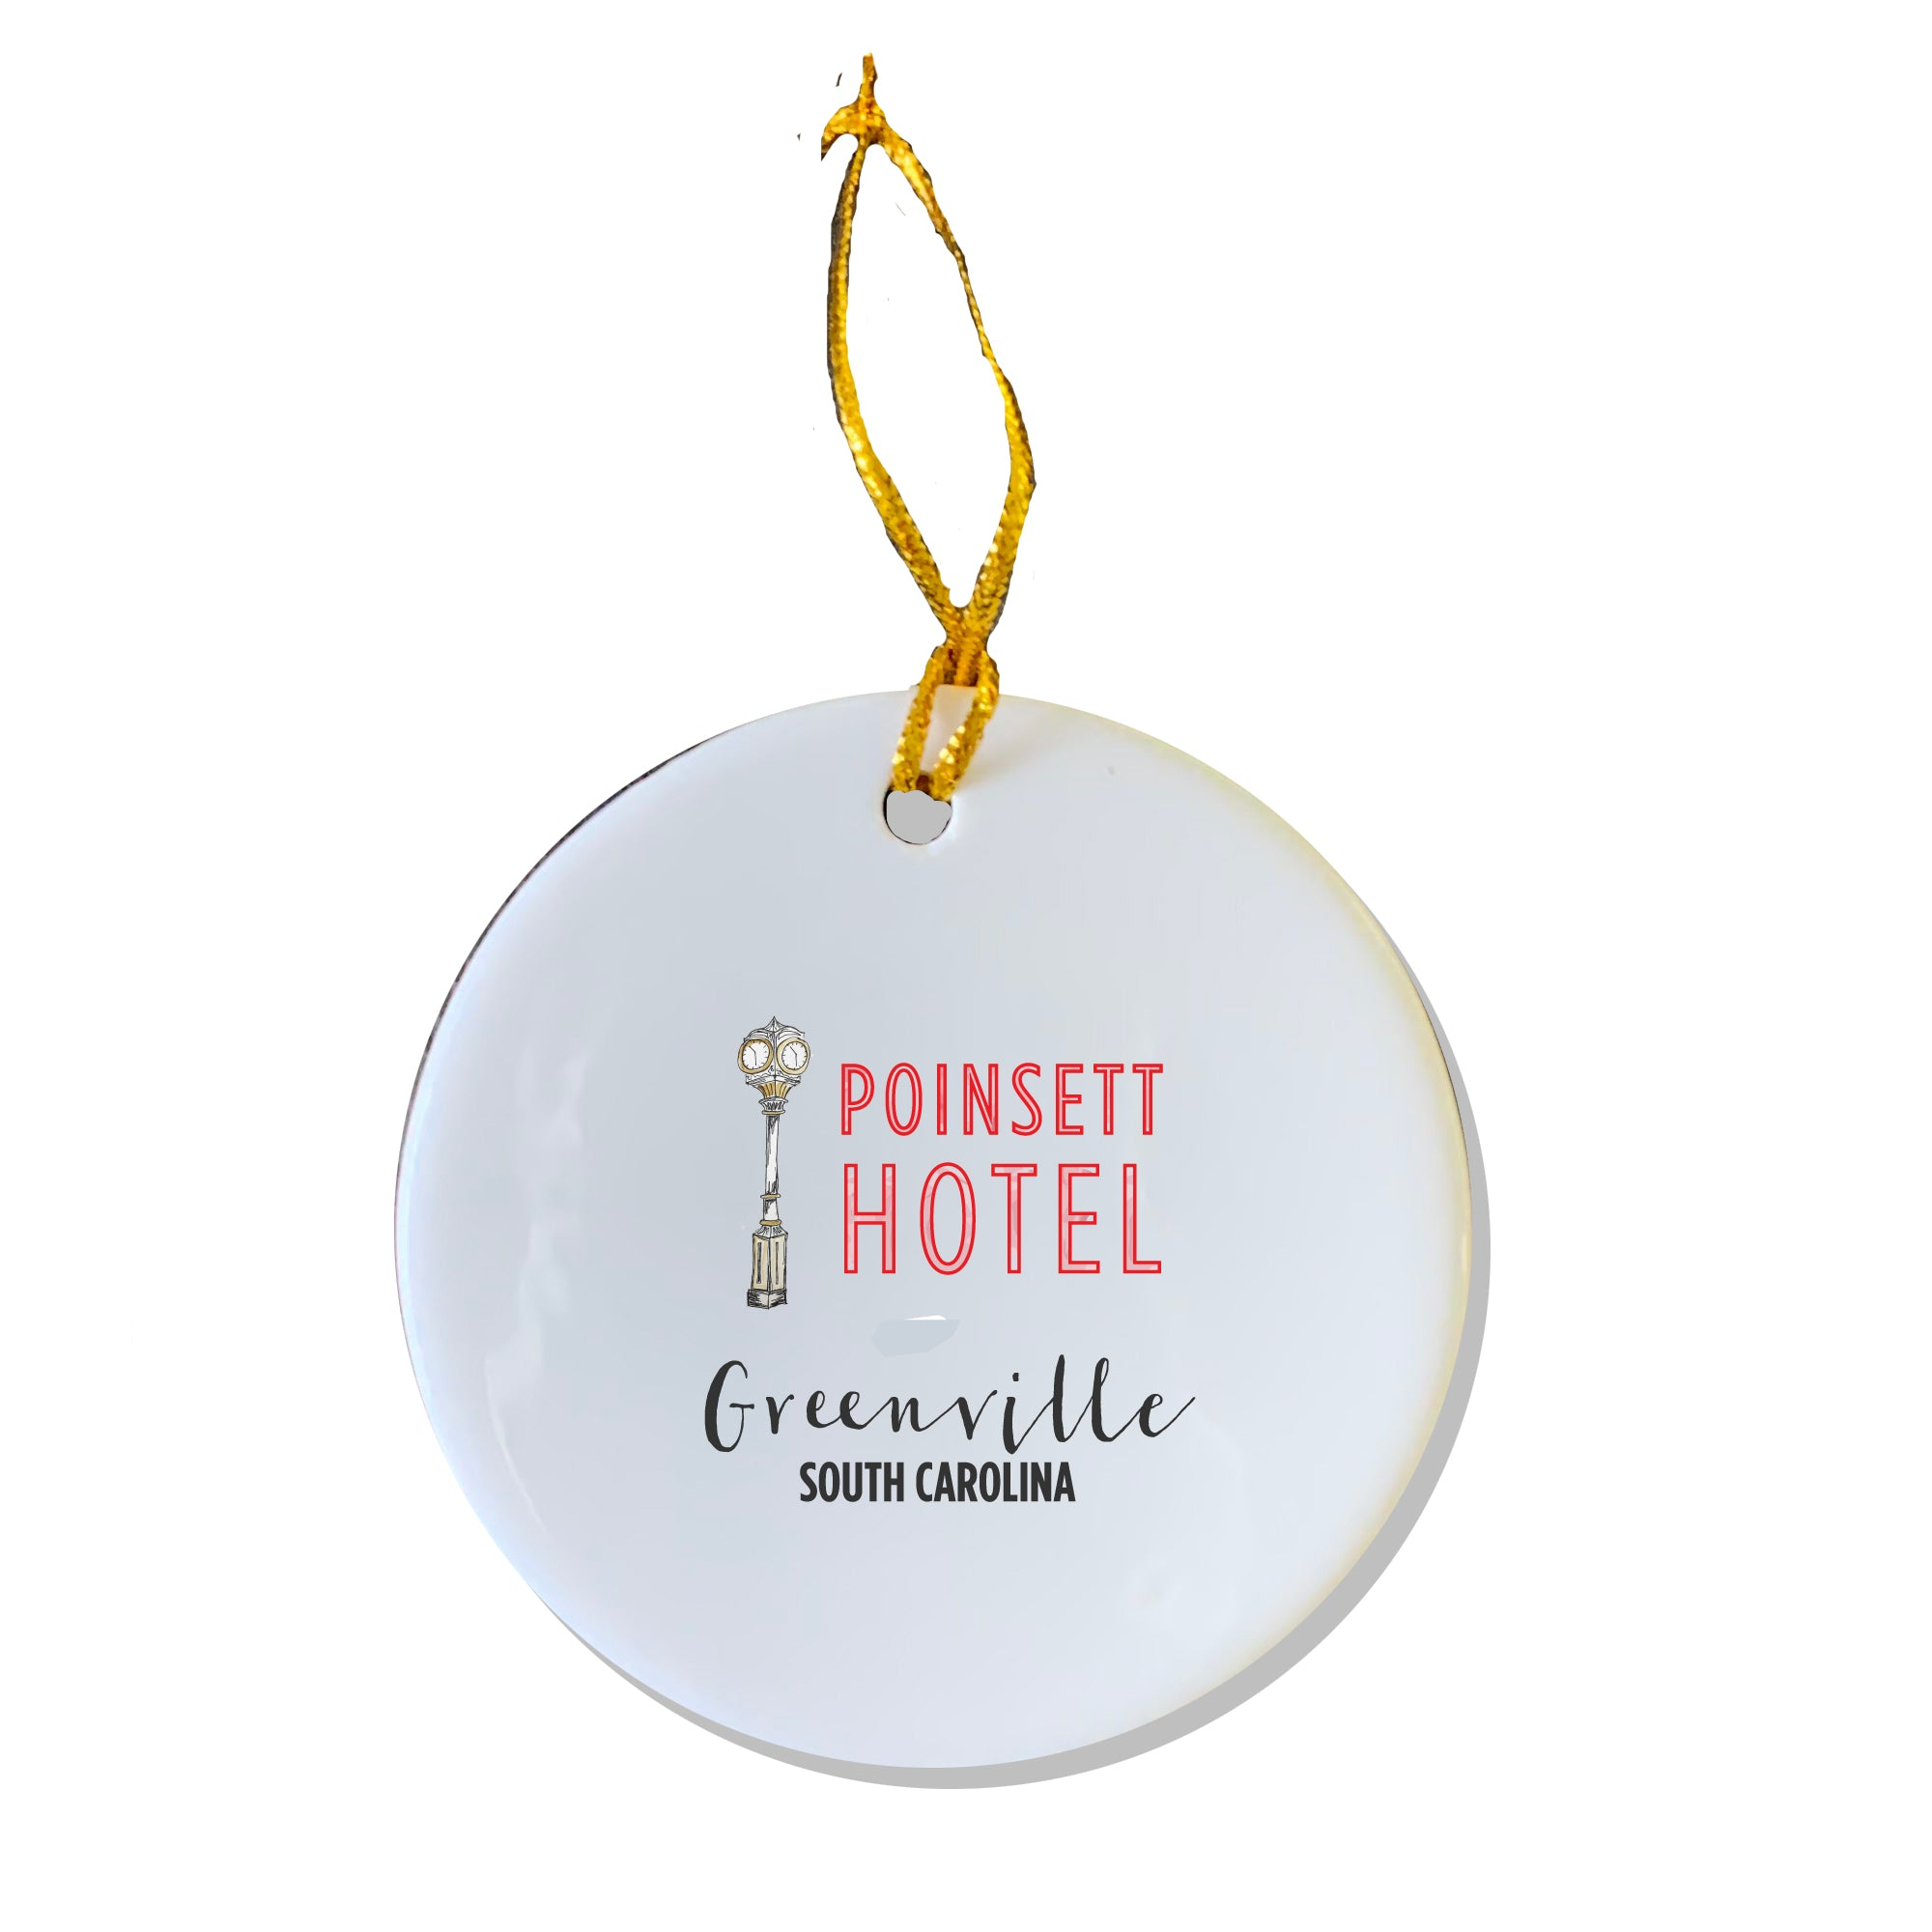 Poinsett Hotel Sign Ornament